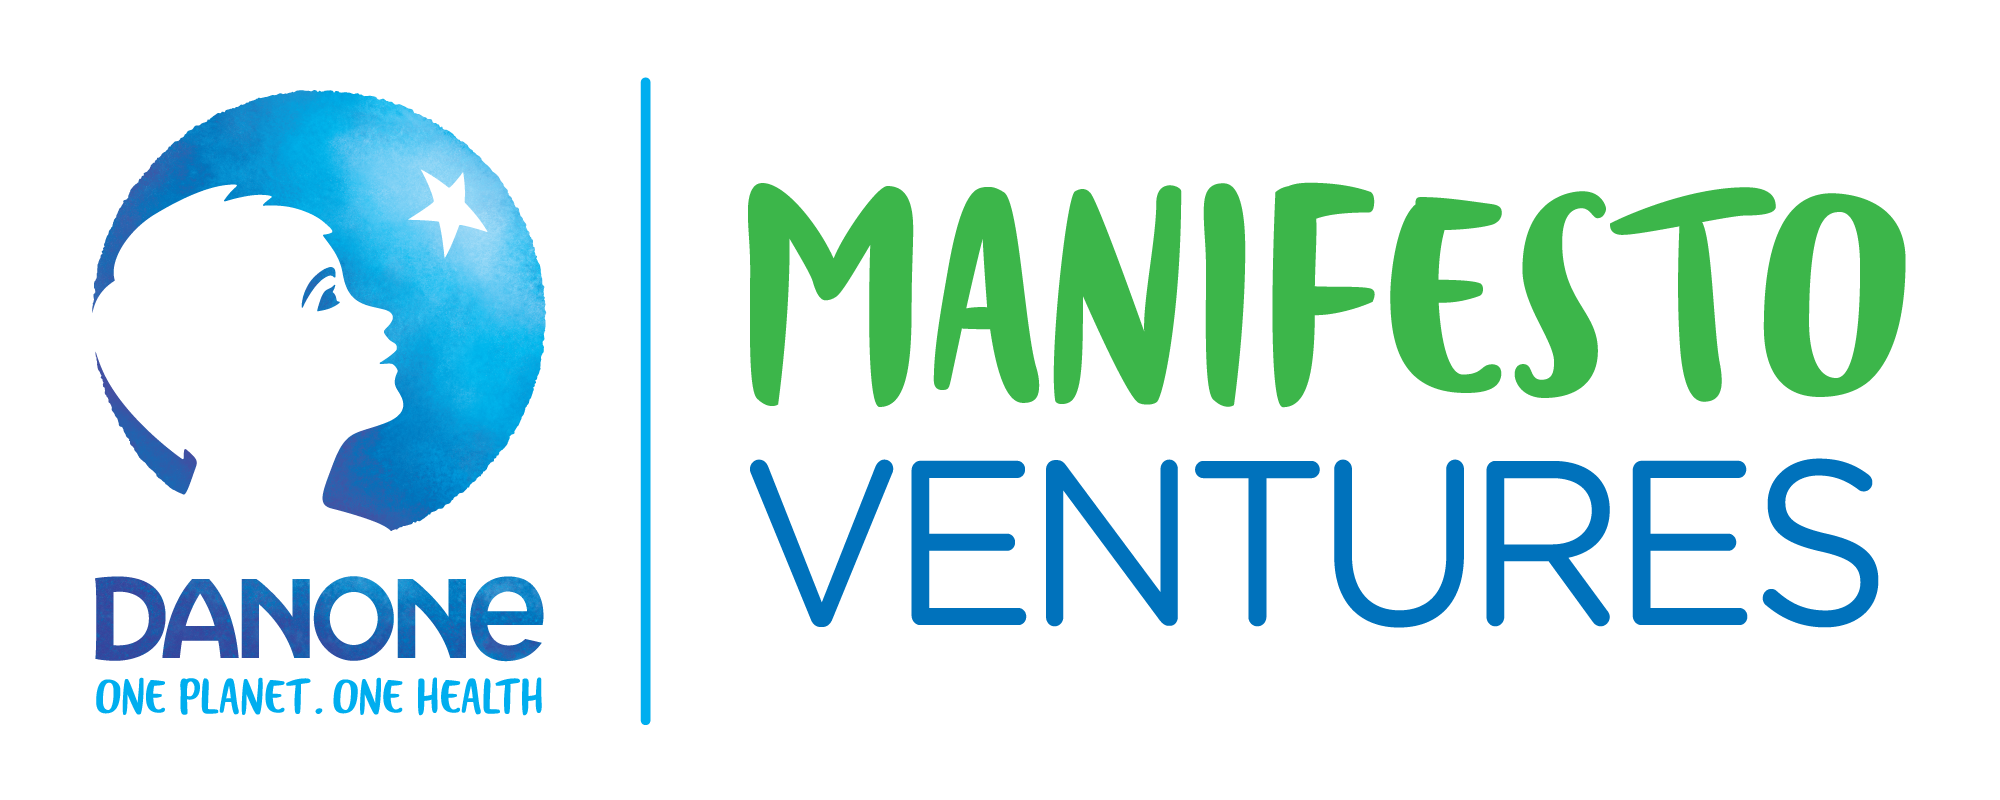 Logo for Danone Manifesto Ventures